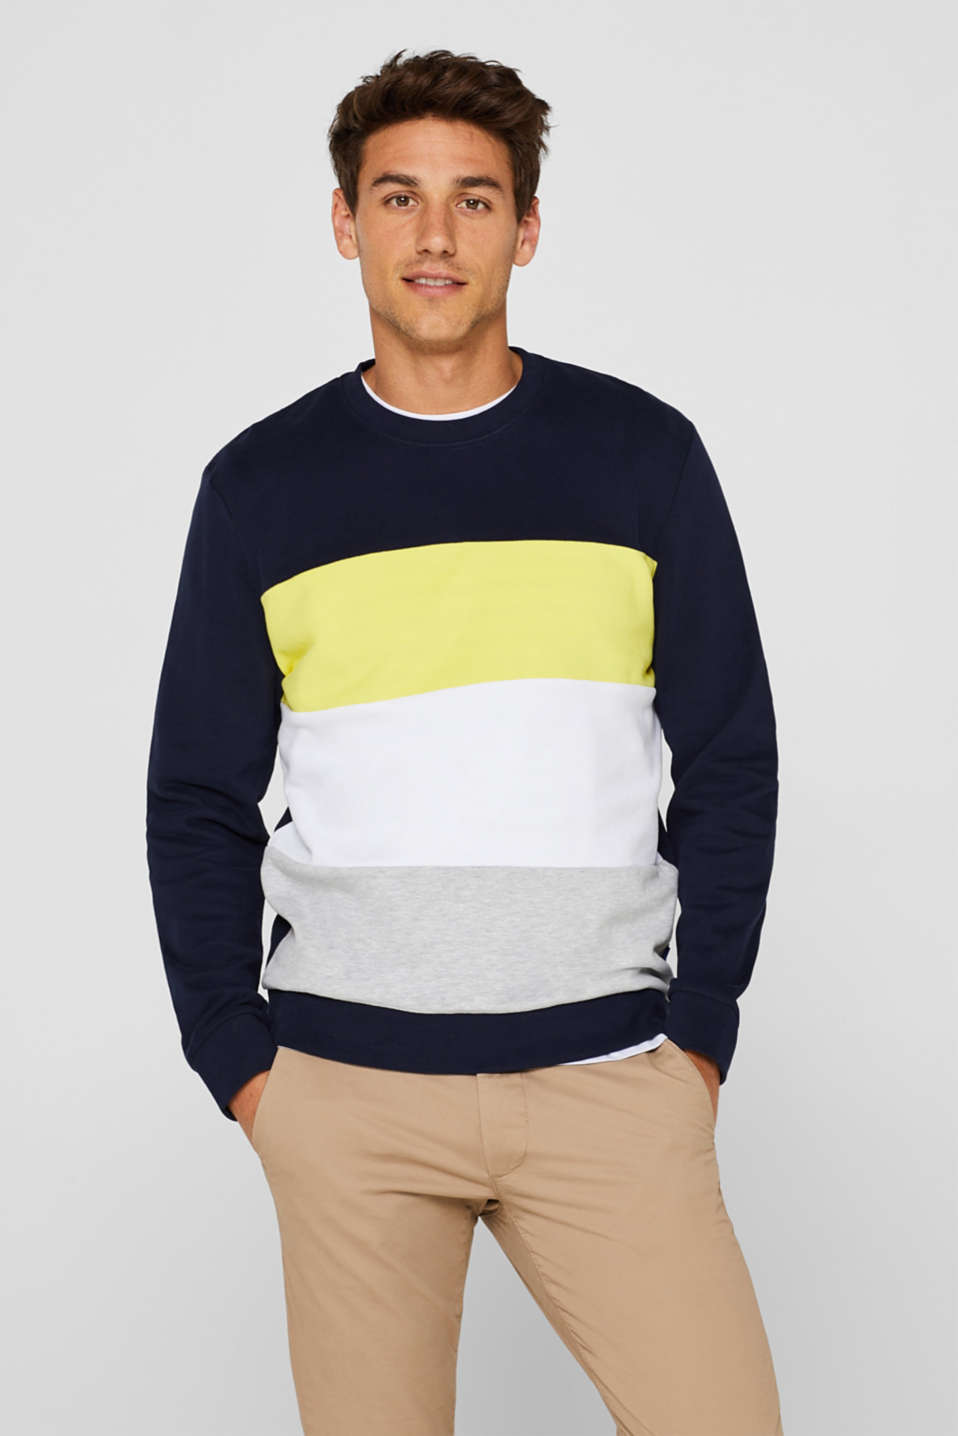 edc - Sweatshirt with colour blocks, 100% cotton